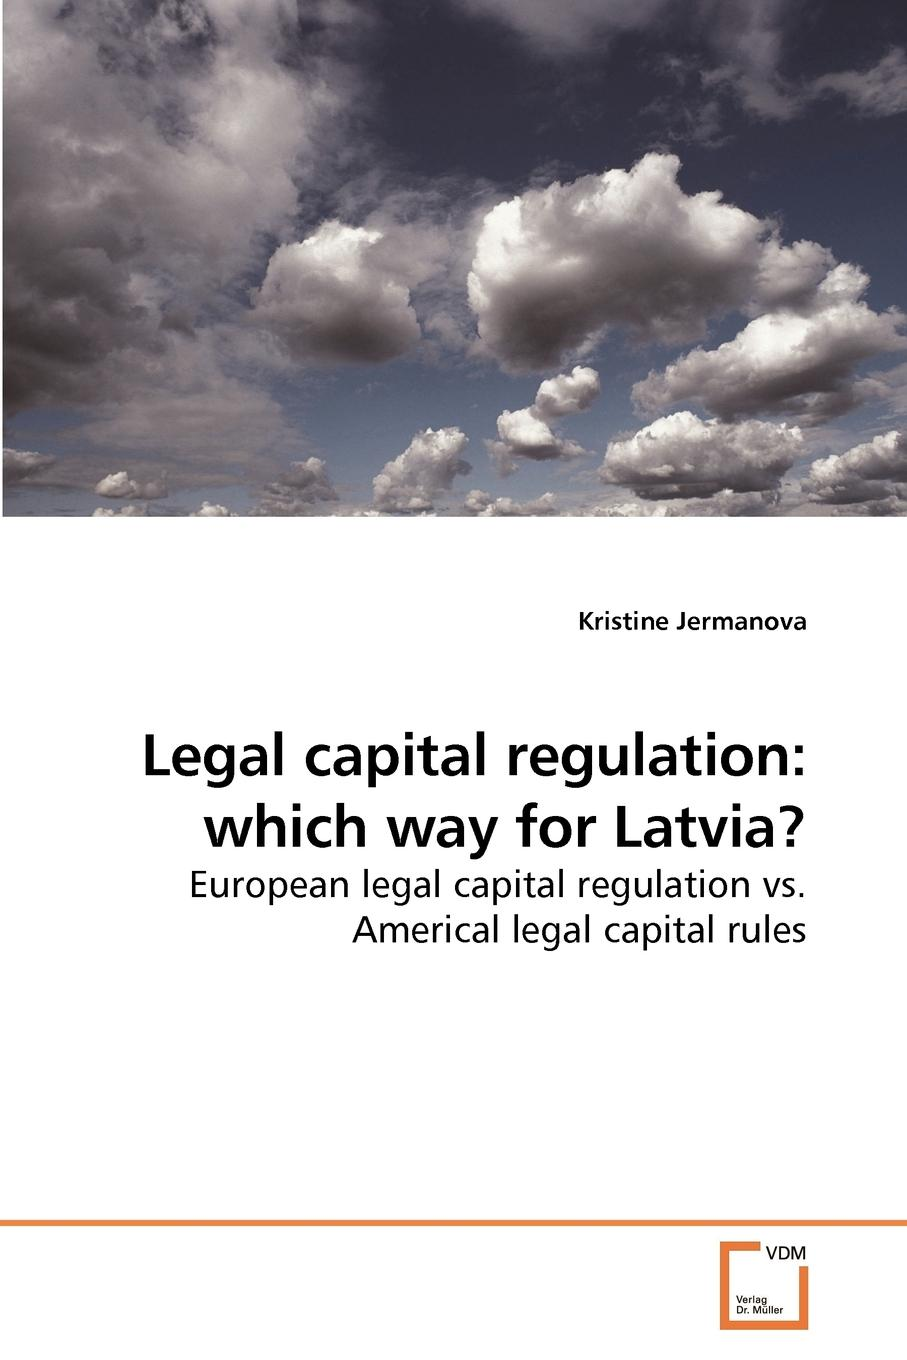 Kristine Jermanova Legal capital regulation. which way for Latvia.